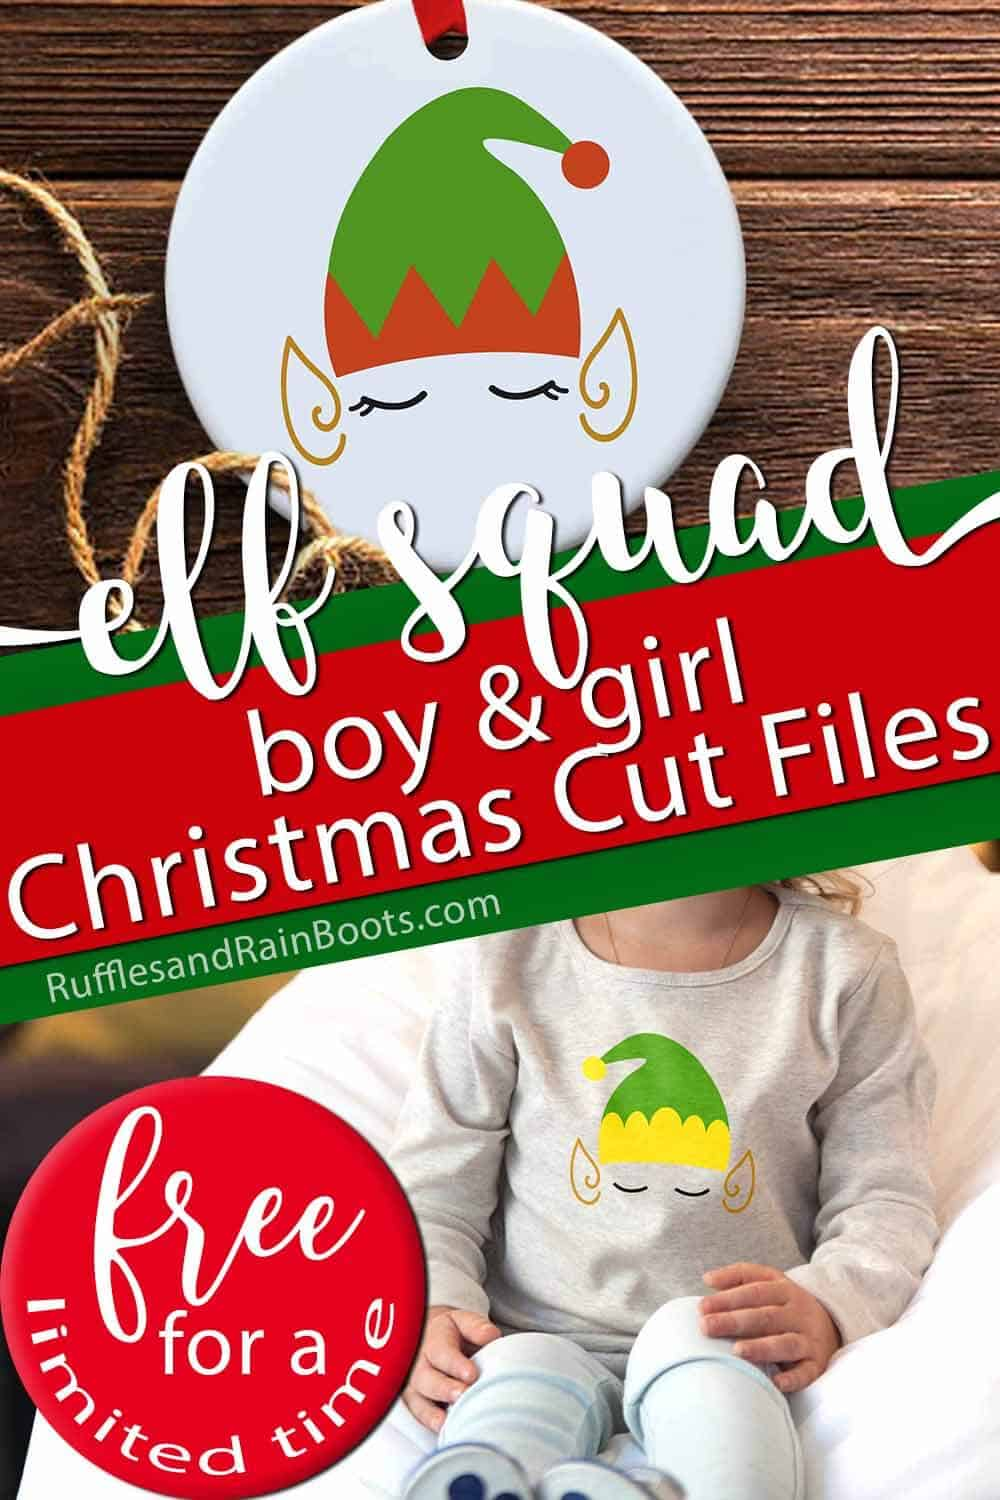 photo collage of free holiday cut file for Cricut or Silhouette with text which reads elf squad boy & girl christmas cut files free for a limited time